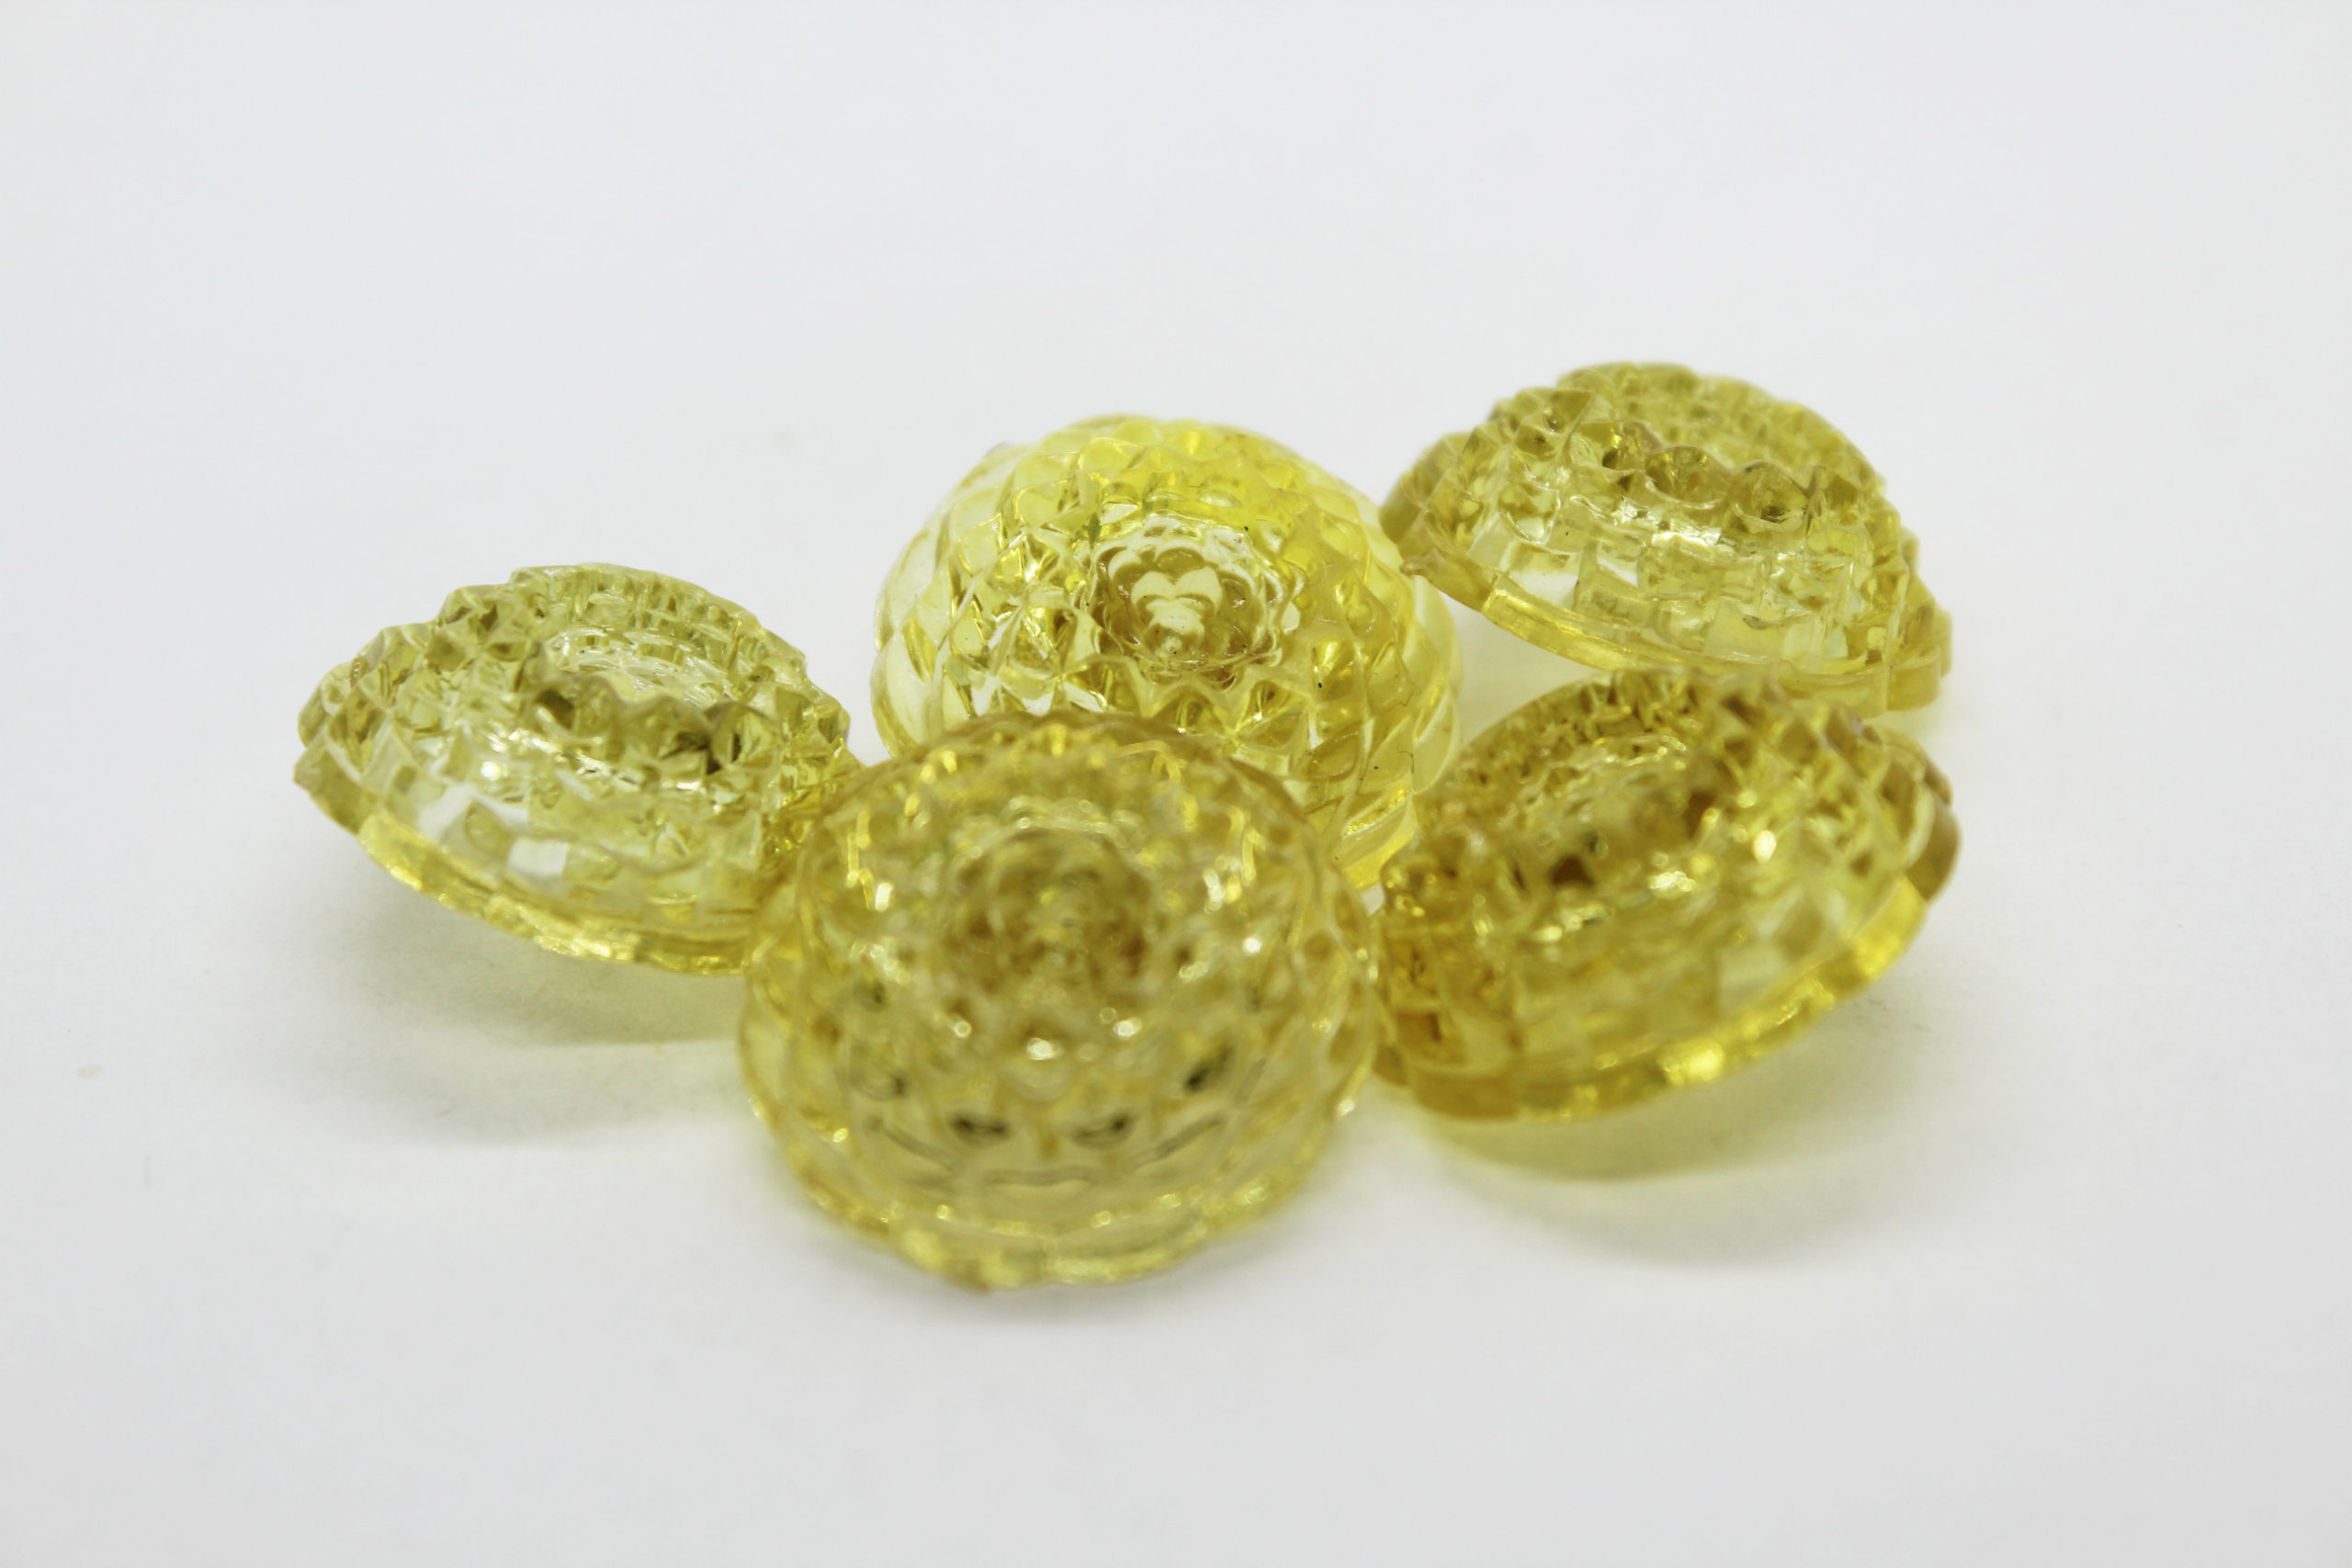 Vintage Metallic Yellow Lucite Dome Buttons – Set of 5 | Whispering City RVA